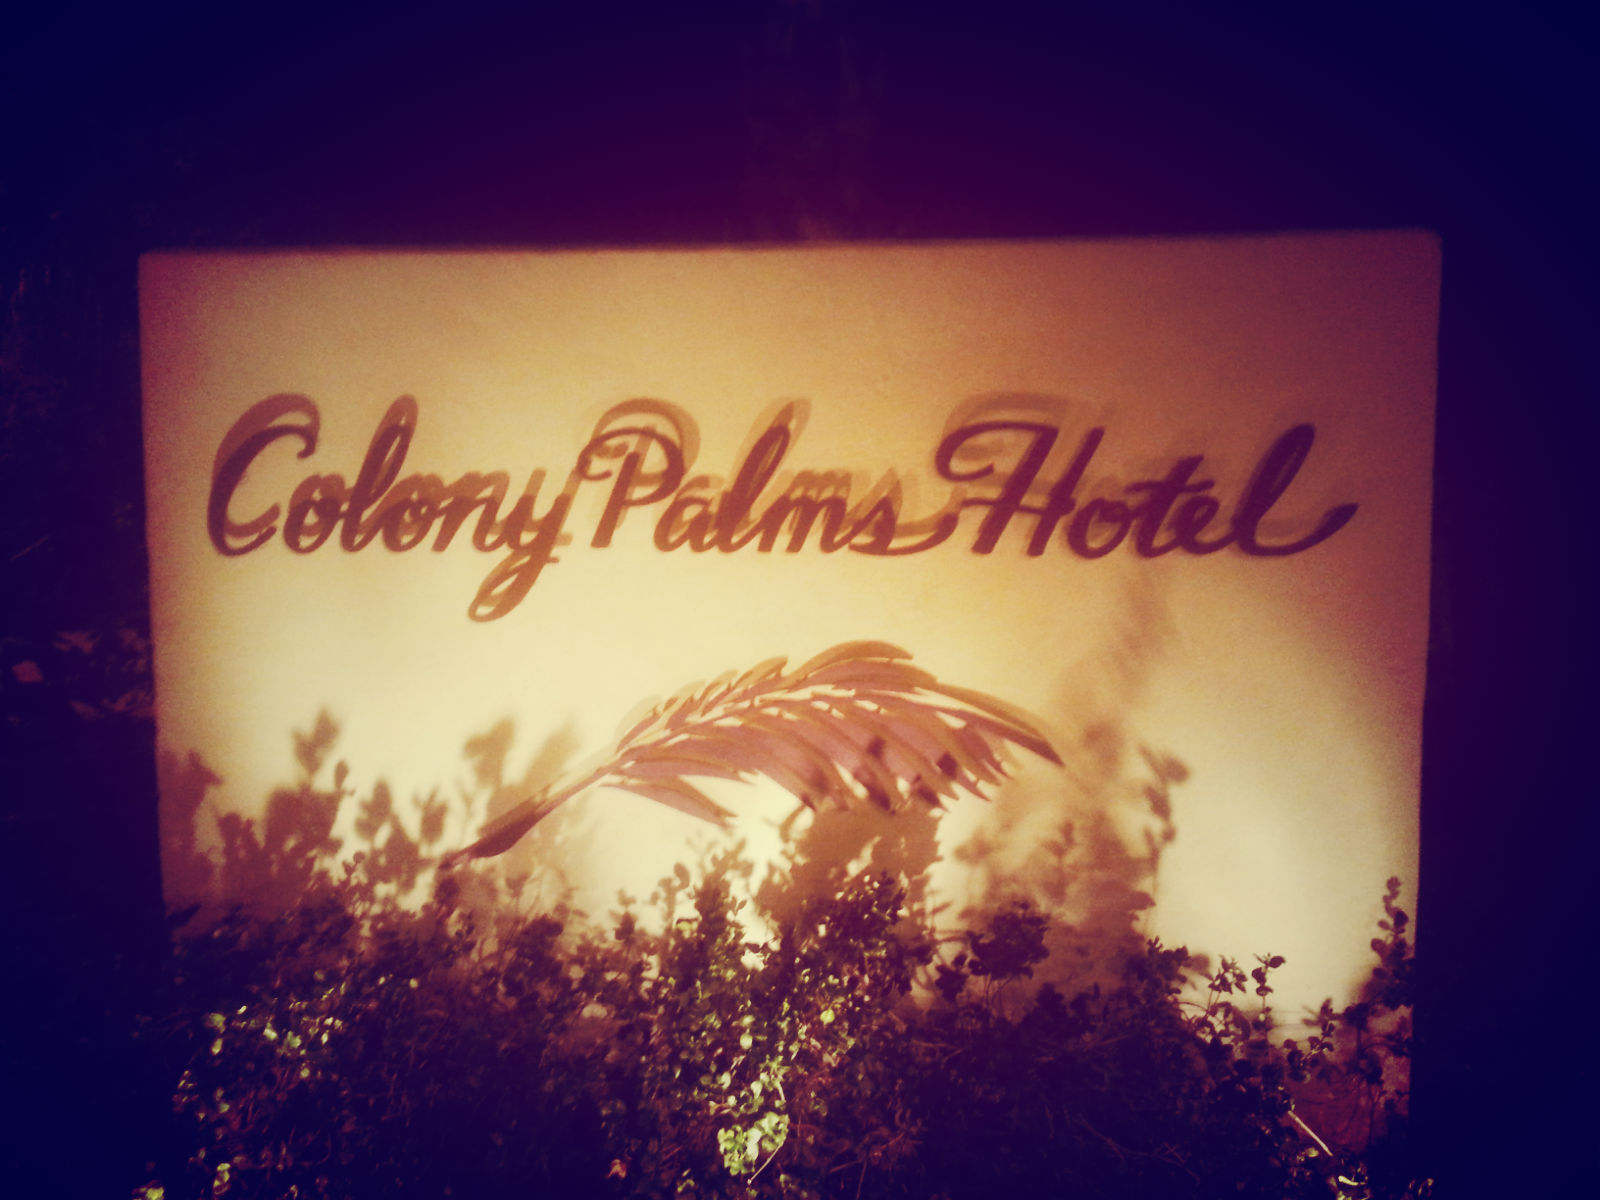 Arriving at Colony Palms Hotel